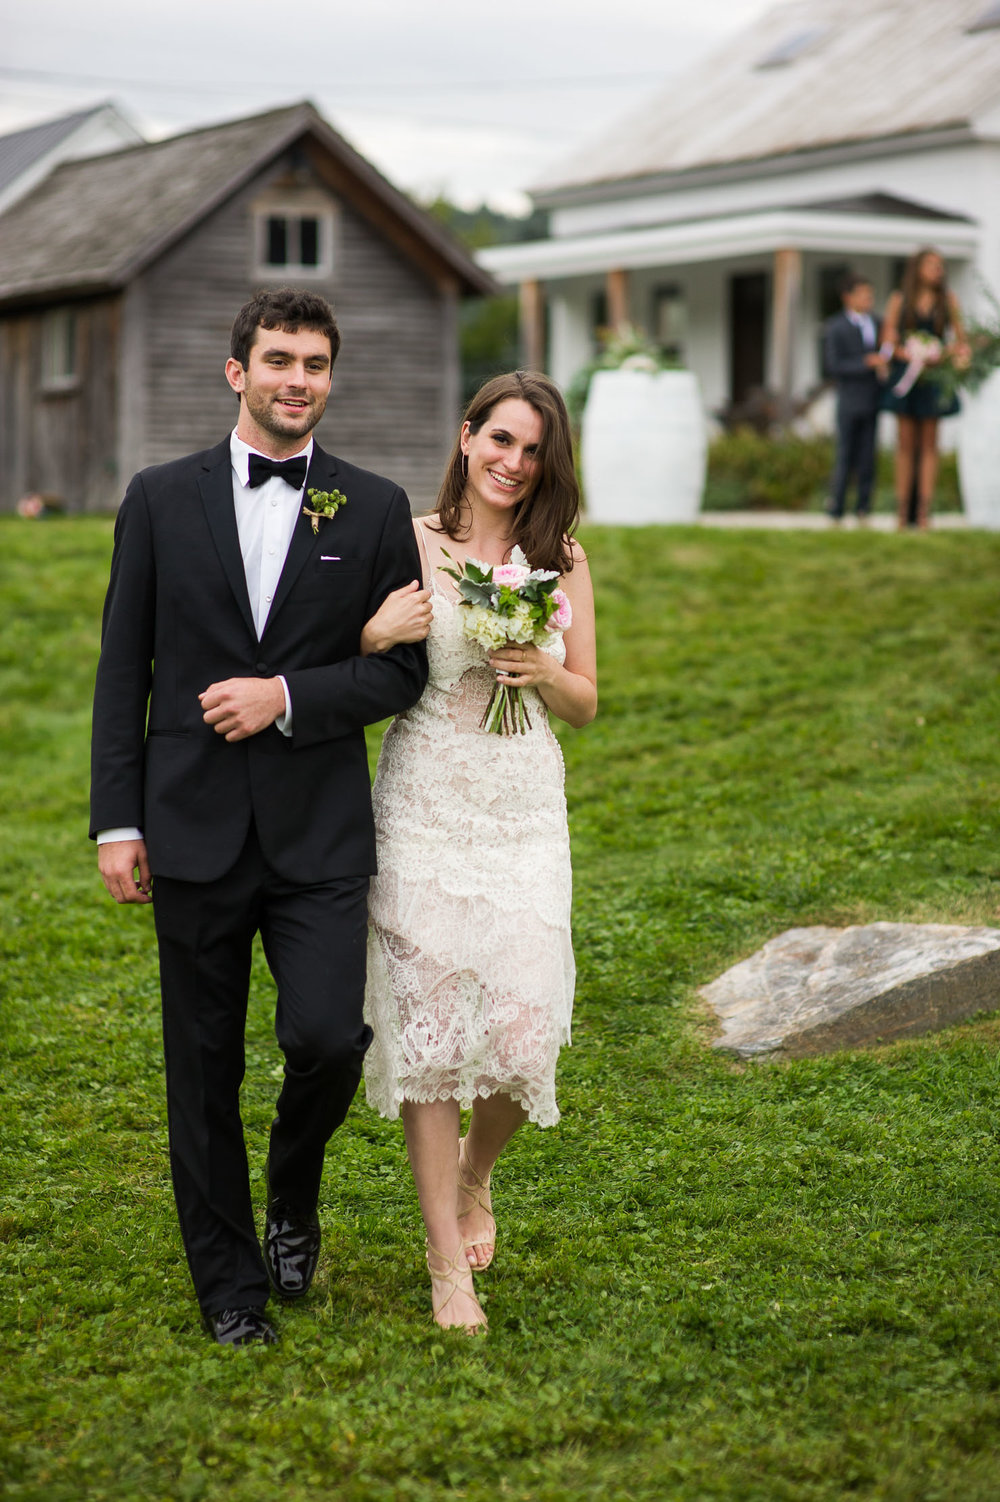 VERMONT-BARN-NYC-WEDDING-PHOTOGRAPHER-1059.jpg